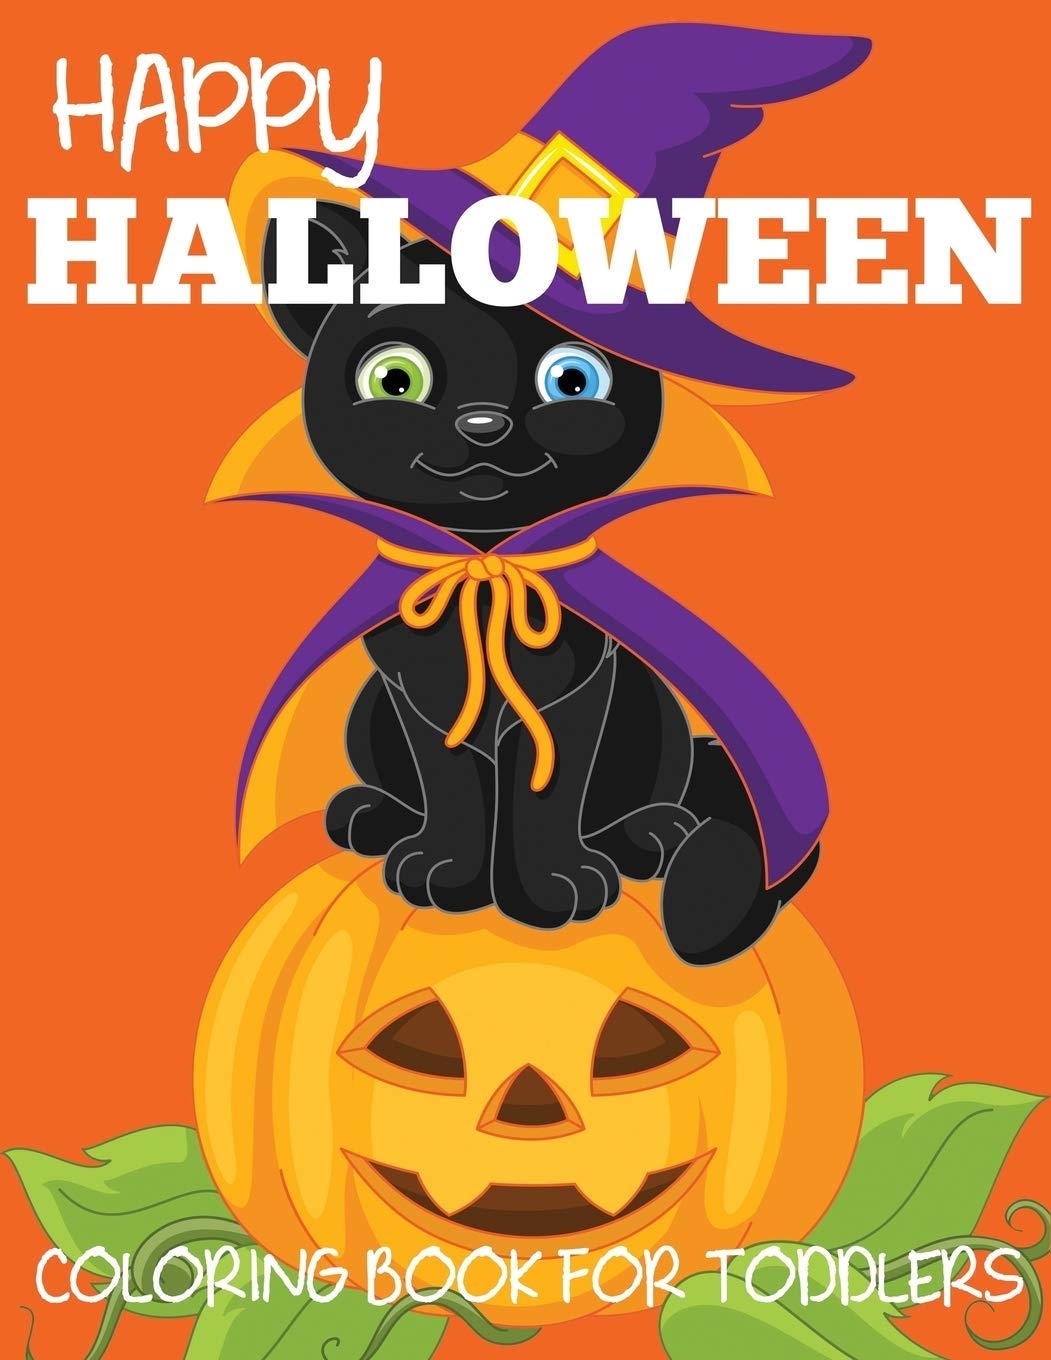 Cute Happy Halloween 2020 Happy Halloween Coloring Book for Toddlers (Halloween Books for